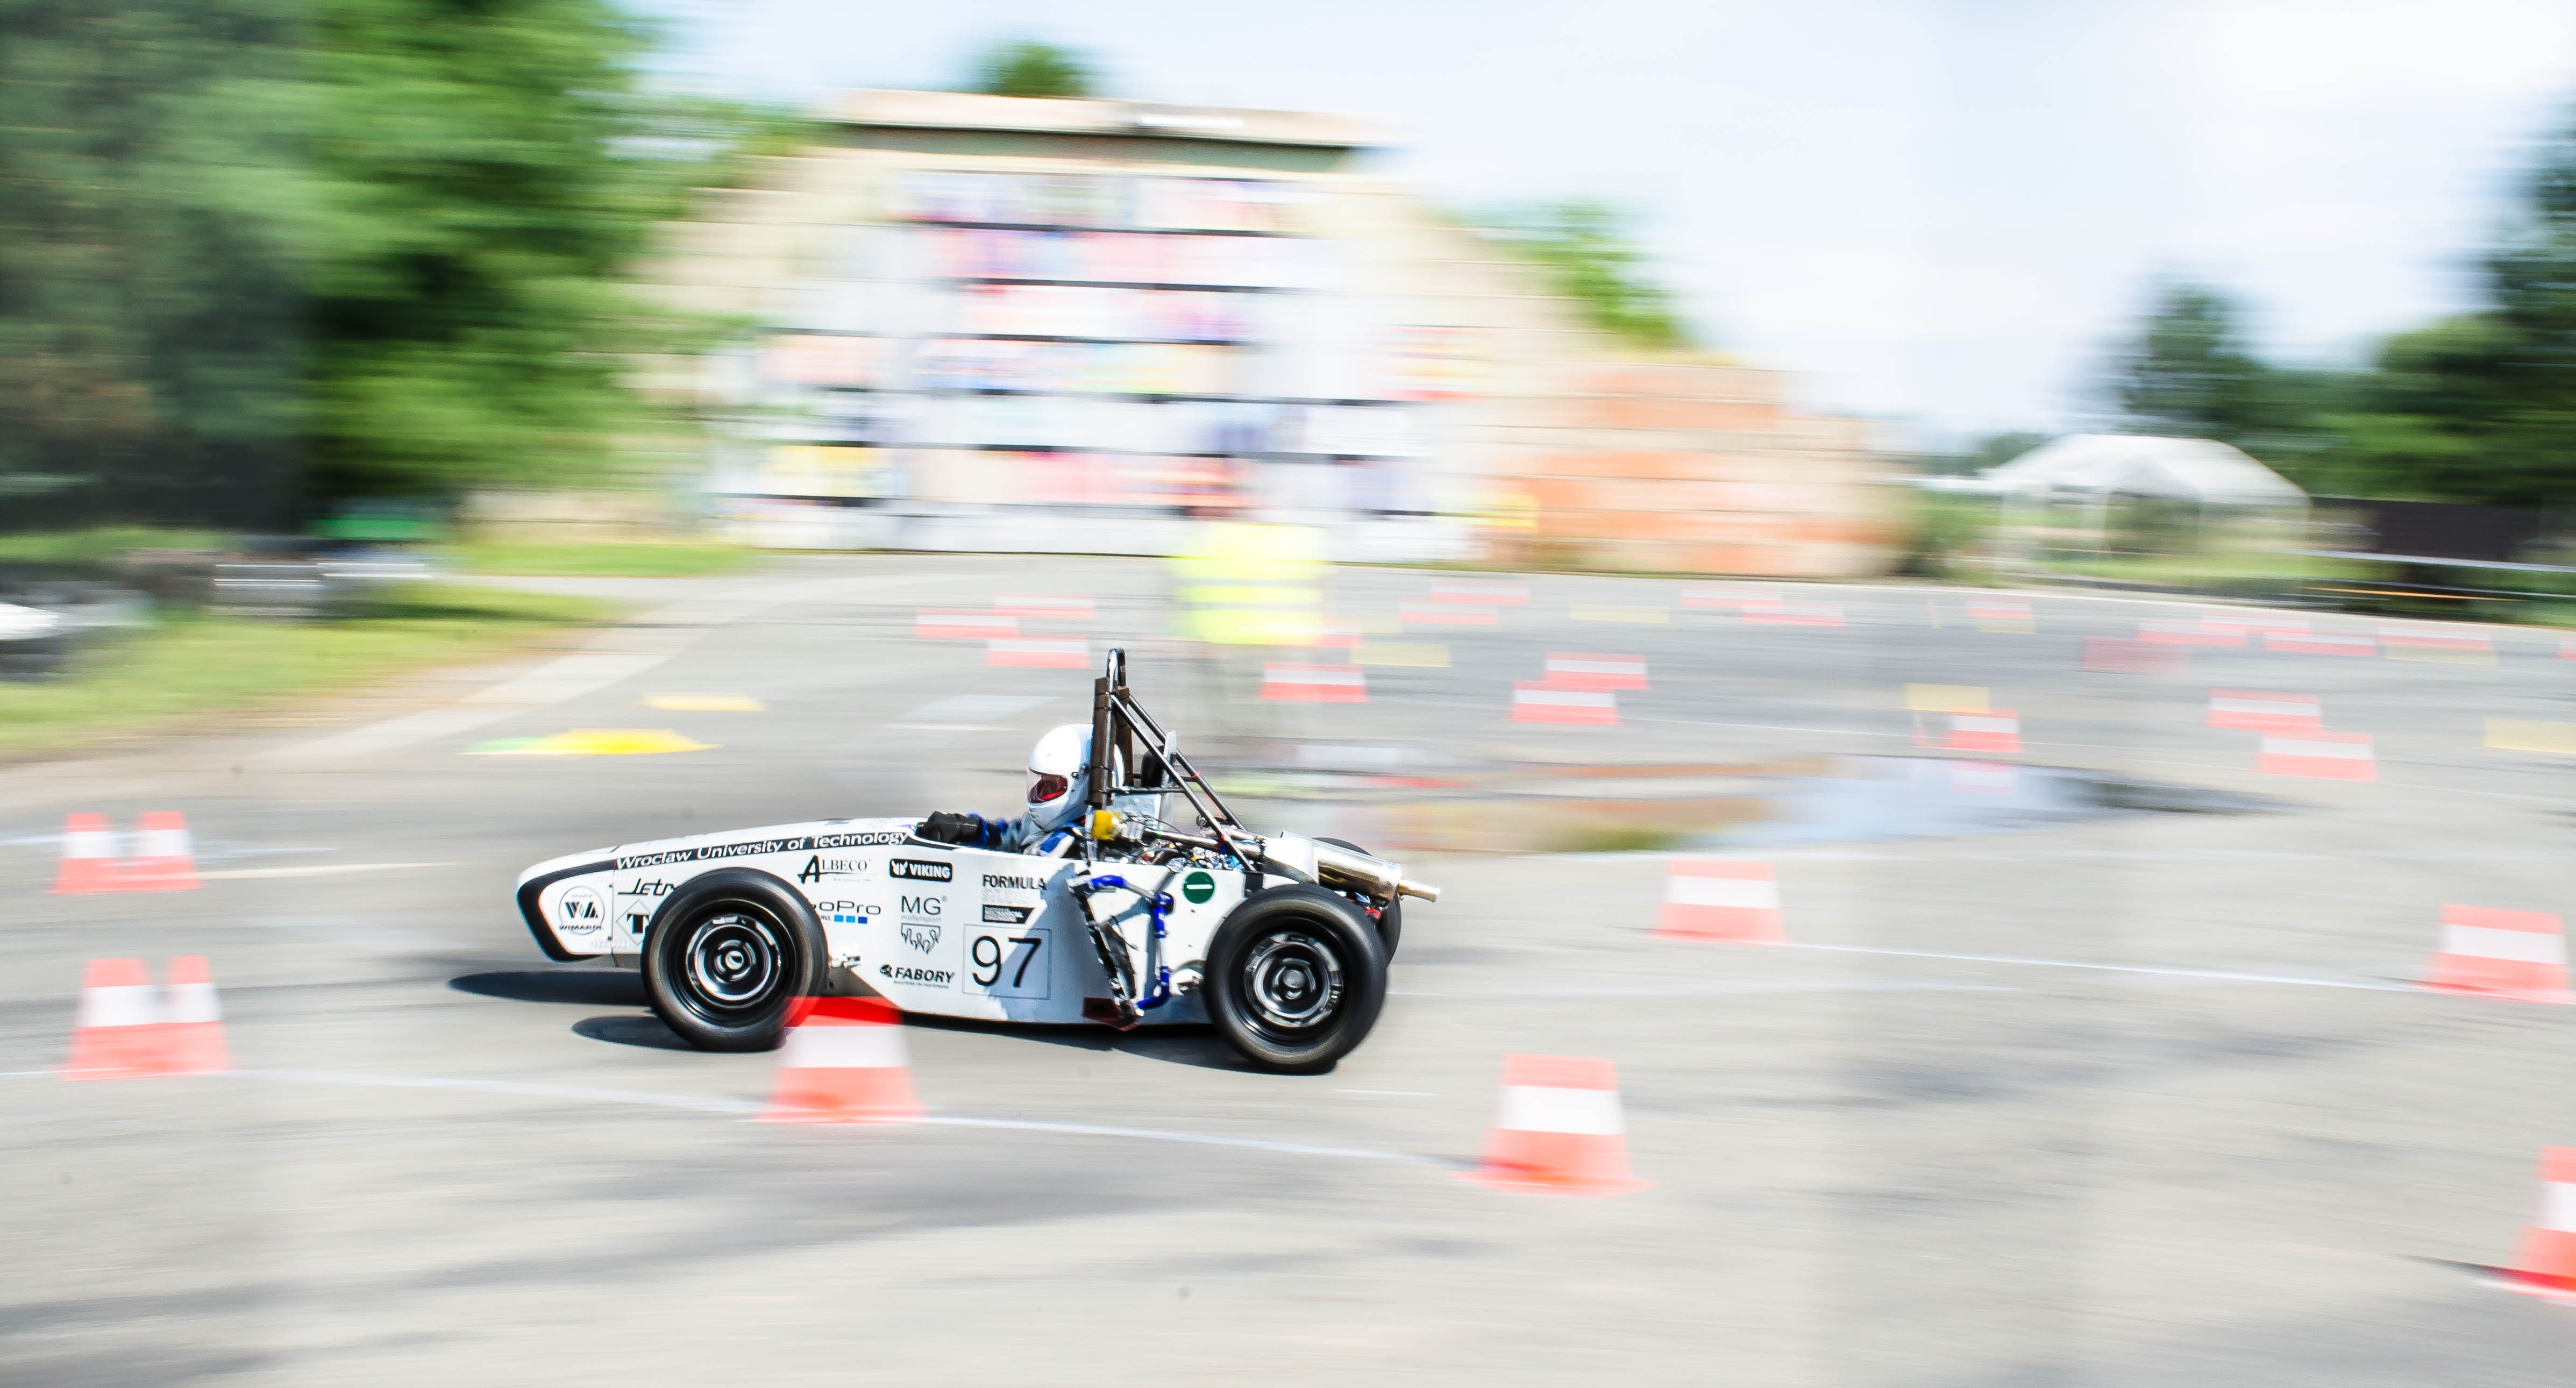 PWR Racing from Wroclaw University of Technology